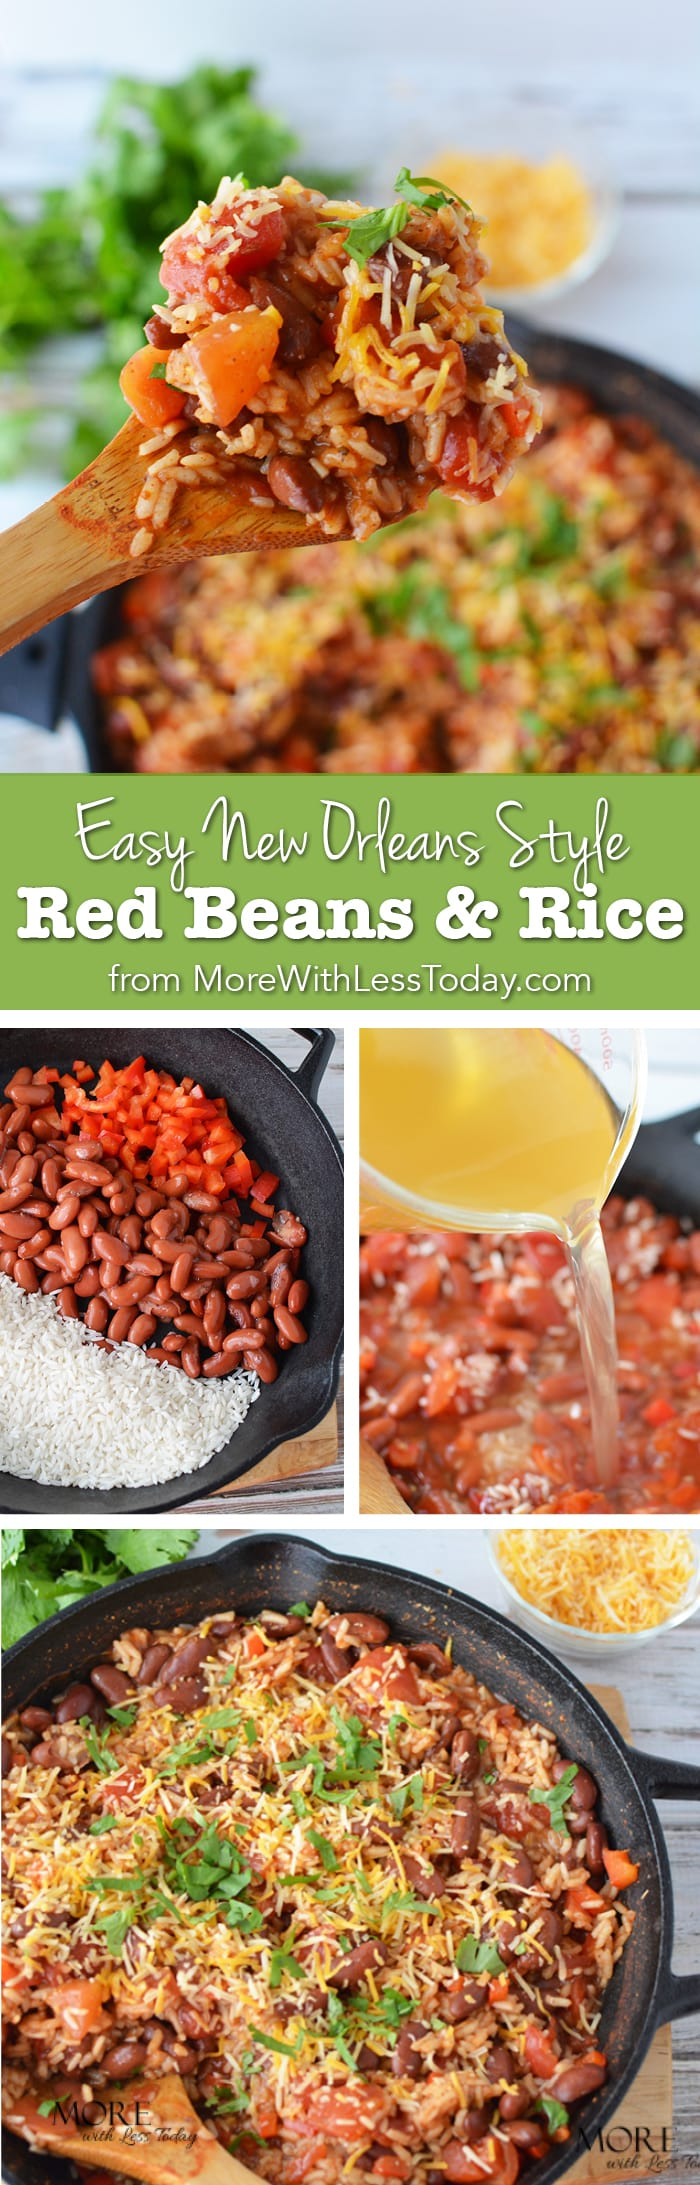 Pinterest recipe for Easy New Orleans Red Beans and Rice is a tasty meatless meal!